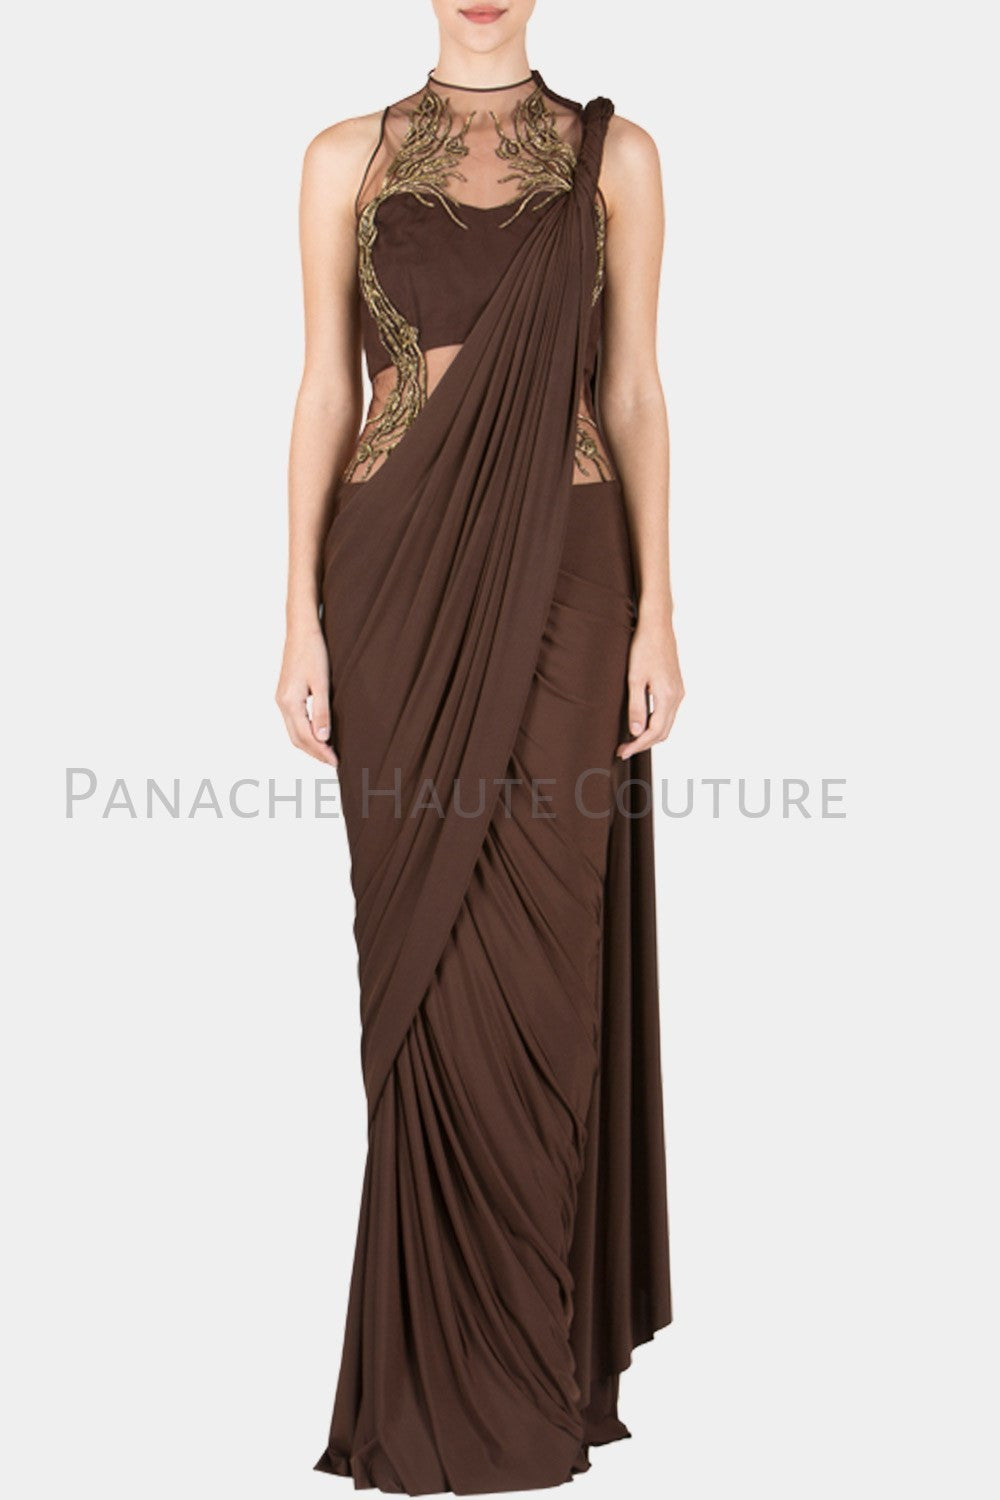 Chocolate Brown Color Designer Saree Gown